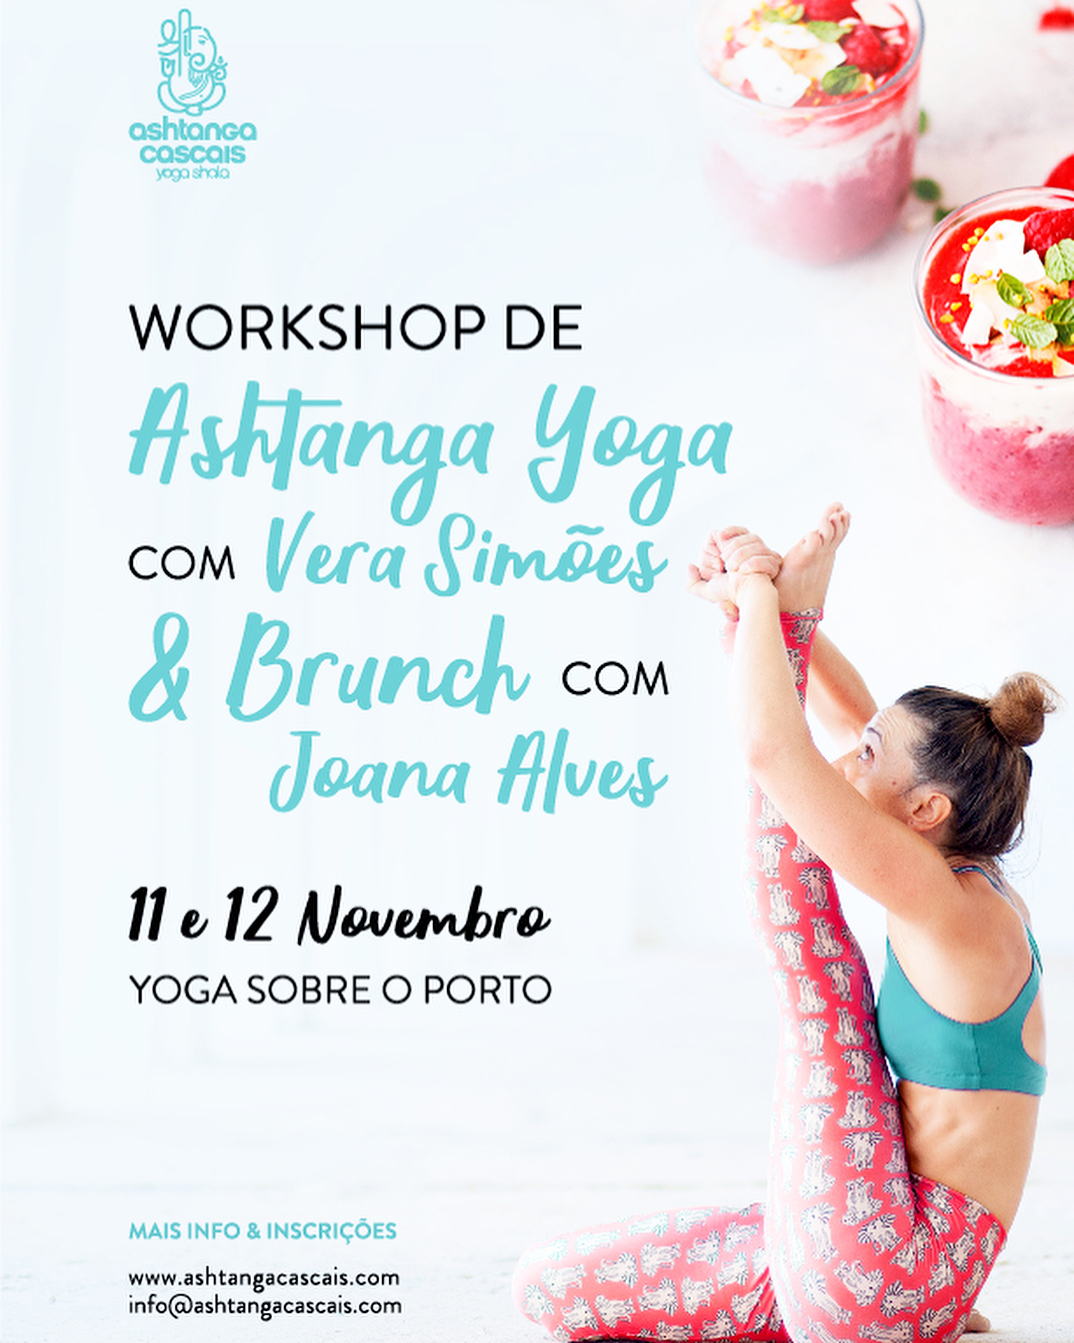 Workshop Intensivo de Ashtanga Yoga no Yoga Sobre O Porto